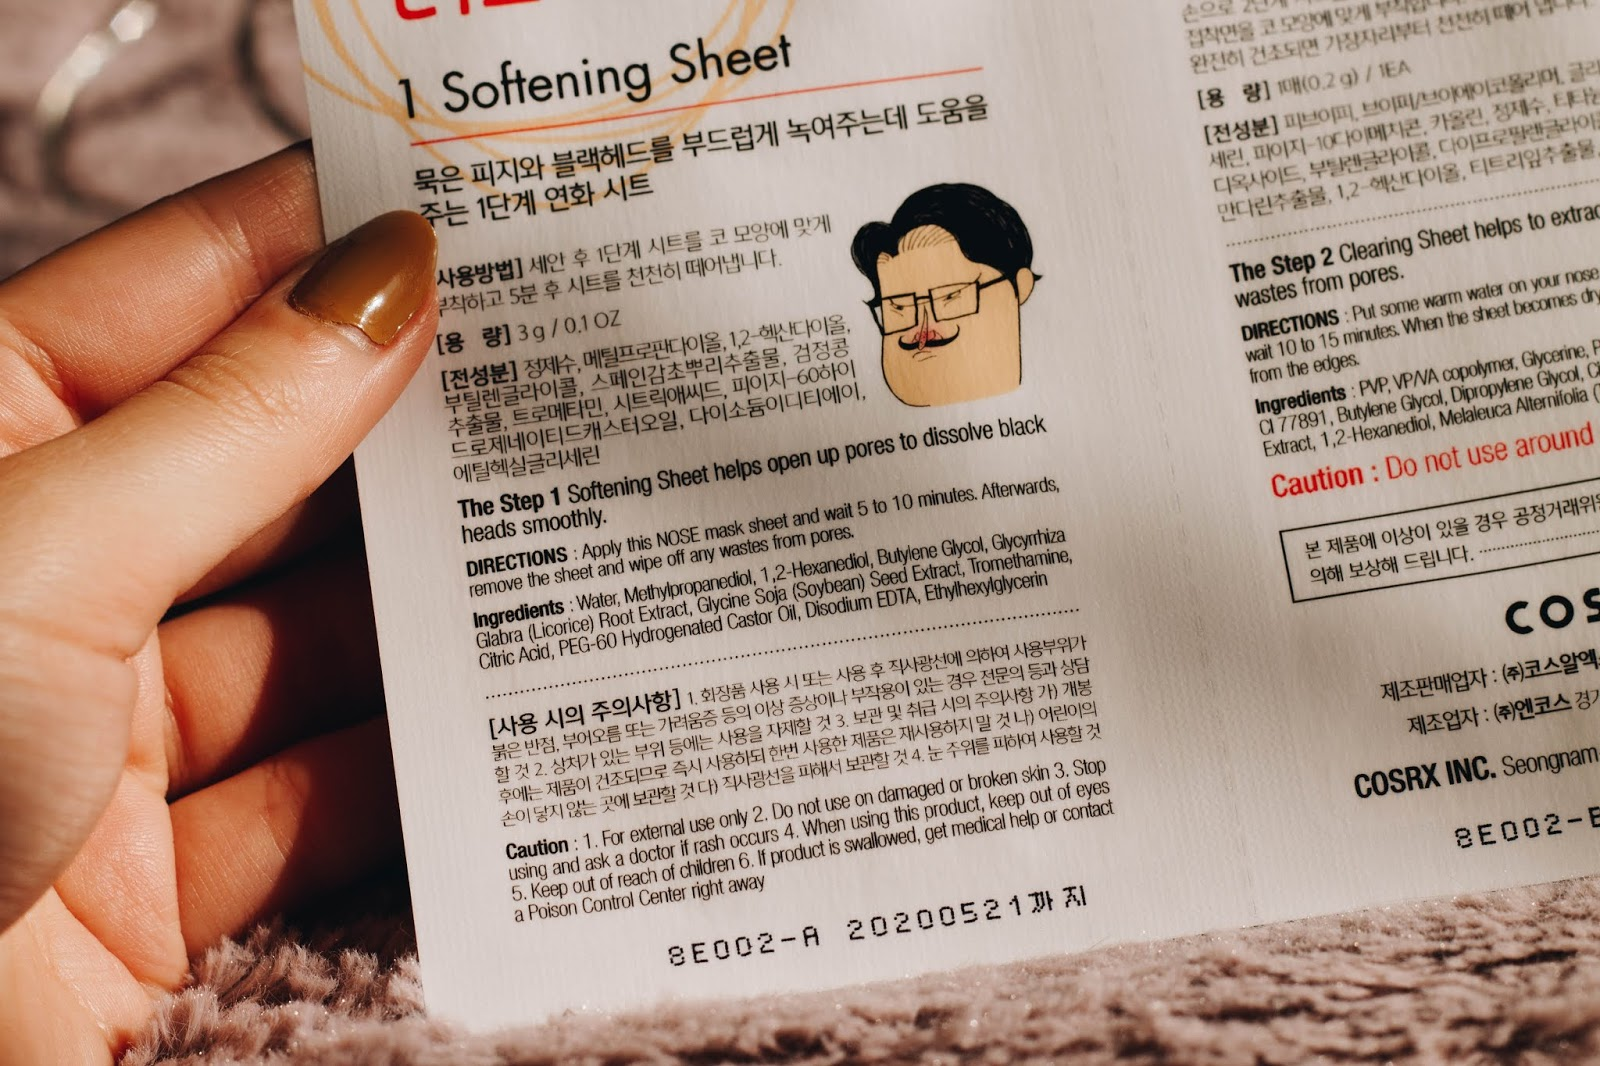 "This kit consists of three distinct steps for removing blackheads. It's that kind of strip pore removal band, you know? The first band helps to prepare the pores, the second removes blackheads, and the last one (the third step) closes the pores and softens the skin. These statements made me very curious and, since I had not used ""strip pores"" for a long time, I decided to order and try it. The kit is from COSRX (Korean and cruelty-free brand) of which I have been talking a lot here."